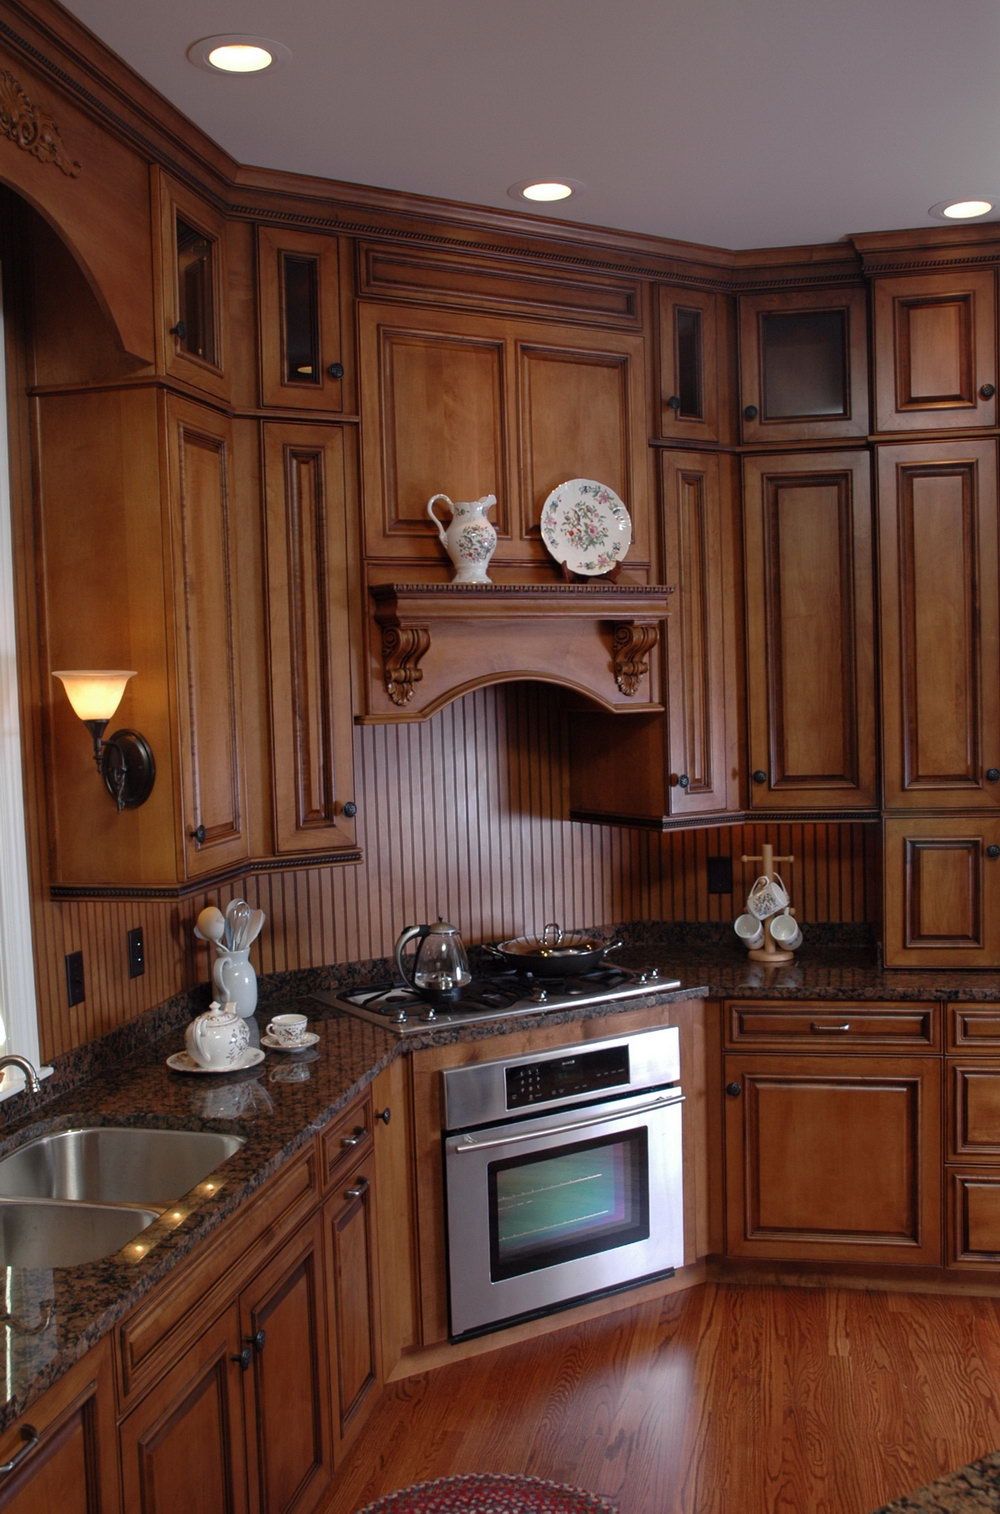 Best Wood For Kitchen Cabinets In India